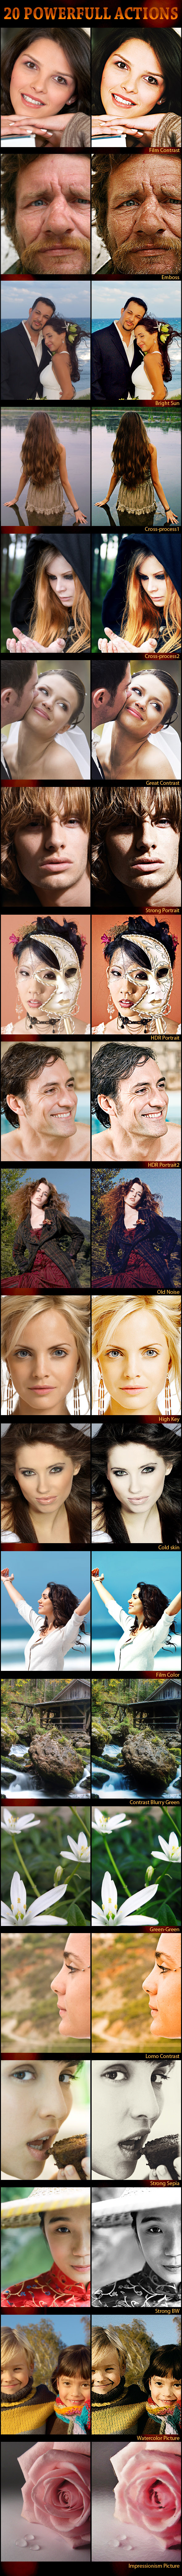 20 Powerfull Actions - Photo Effects Actions